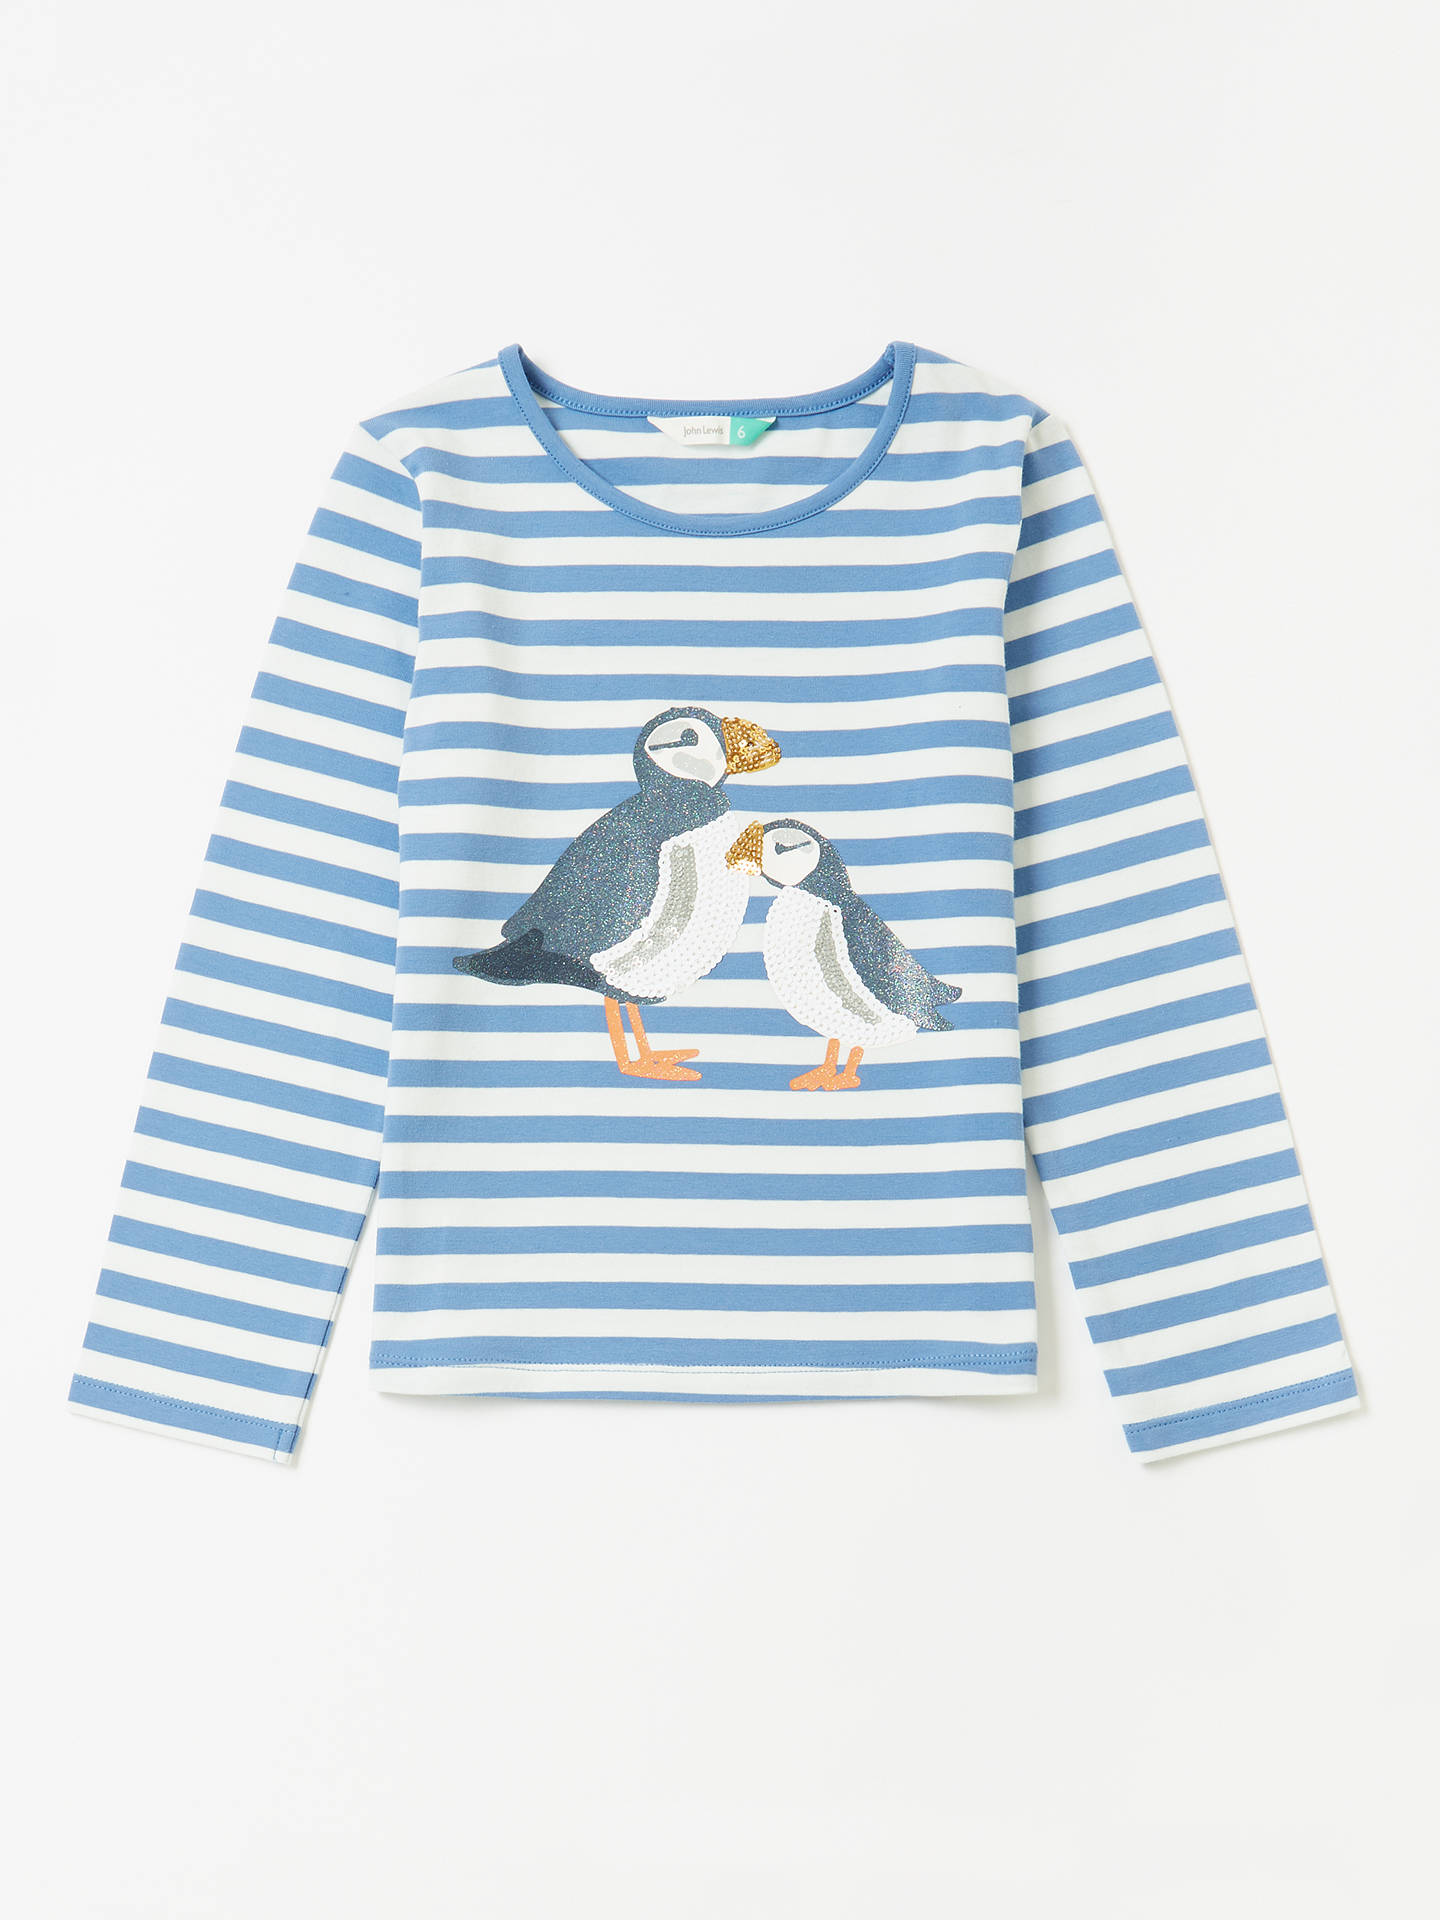 8d646007ea3 Buy John Lewis   Partners Girls  Puffin T-Shirt